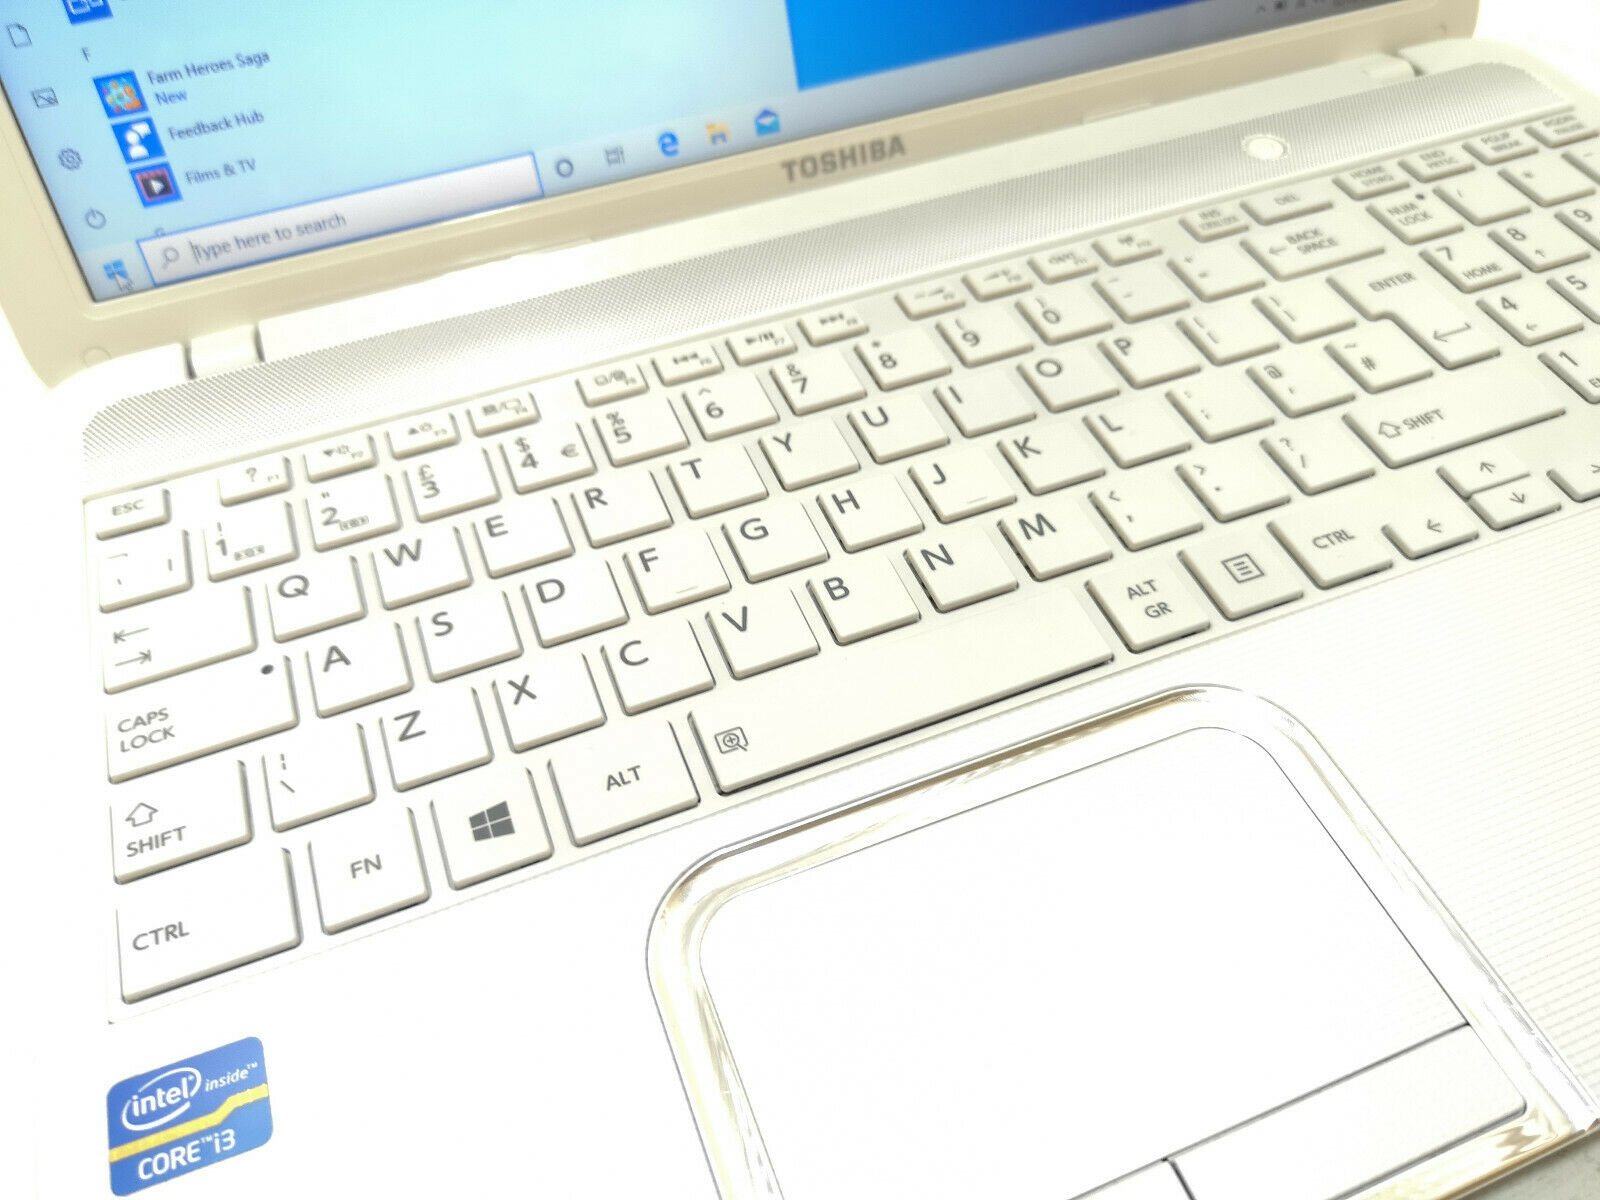 Toshiba Satellite L850 No 2